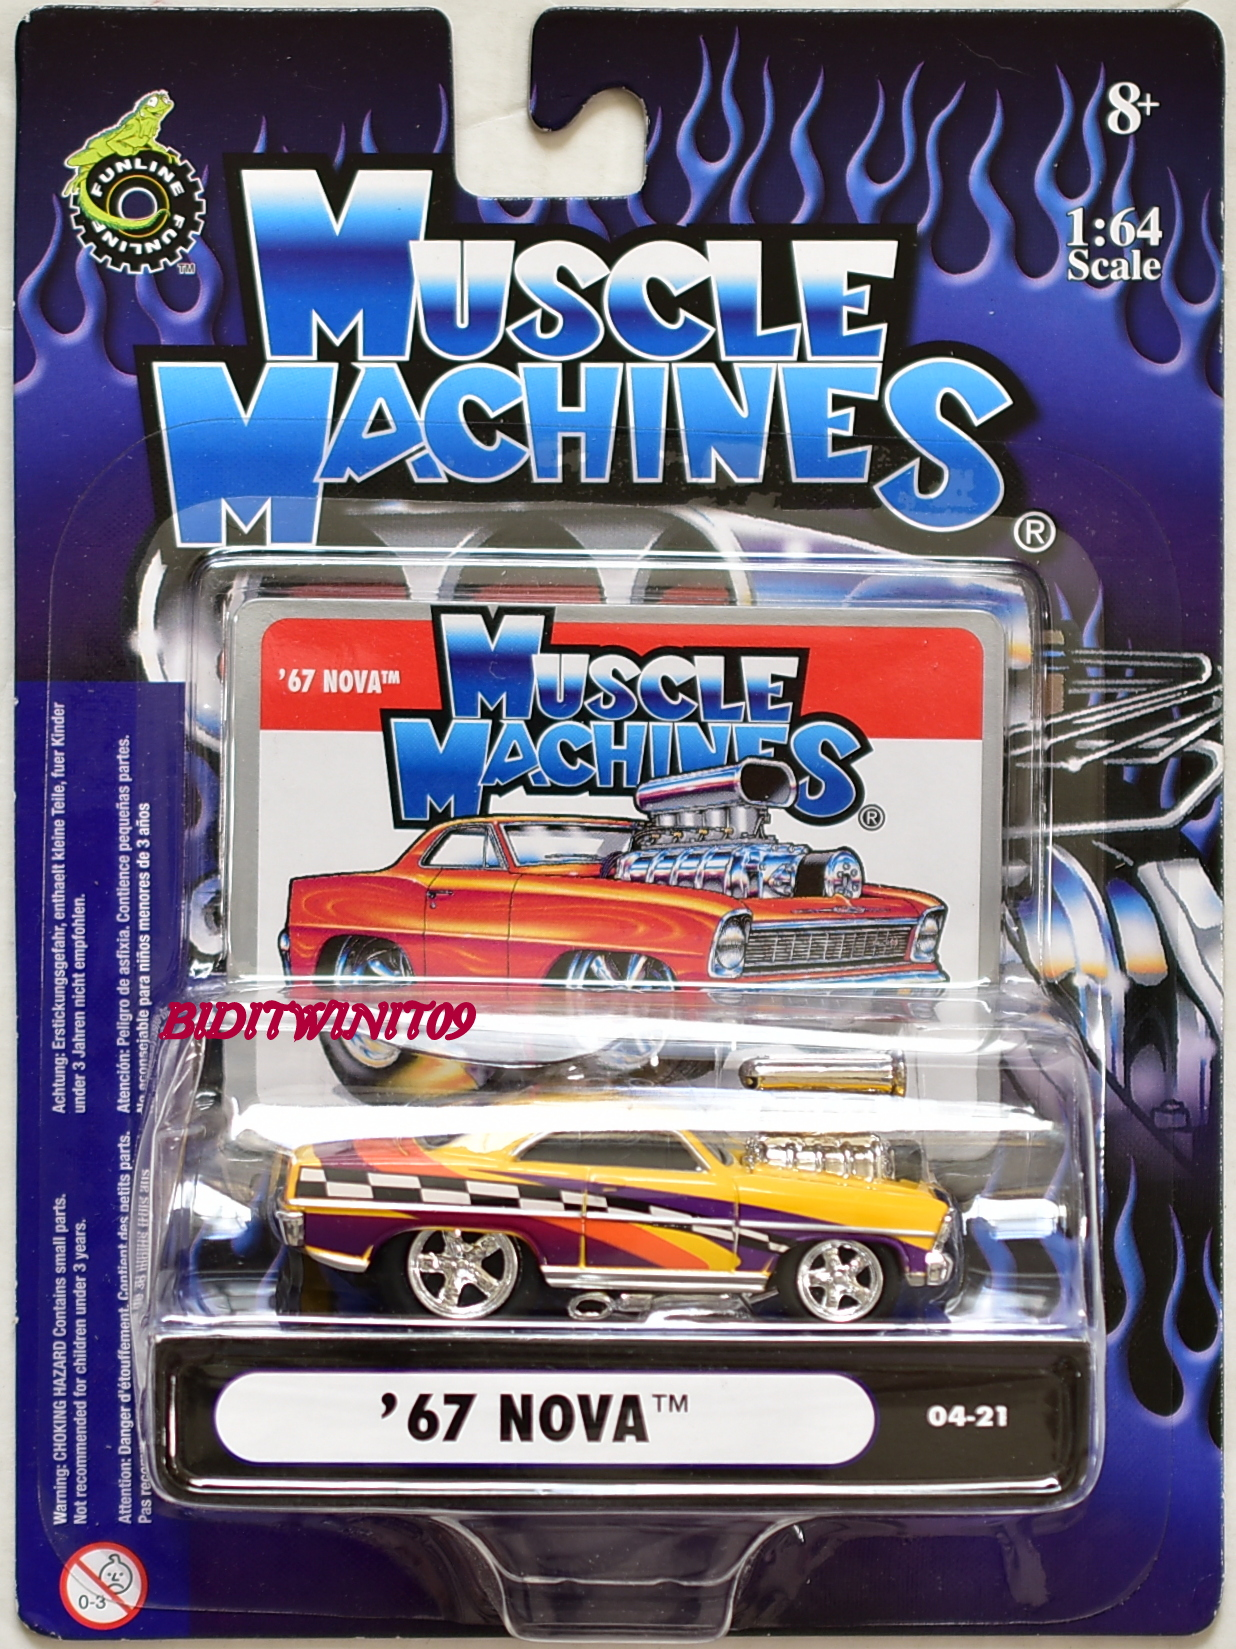 MUSCLE MACHINES '67 NOVA 04-21 YELLOW SCALE 1:64